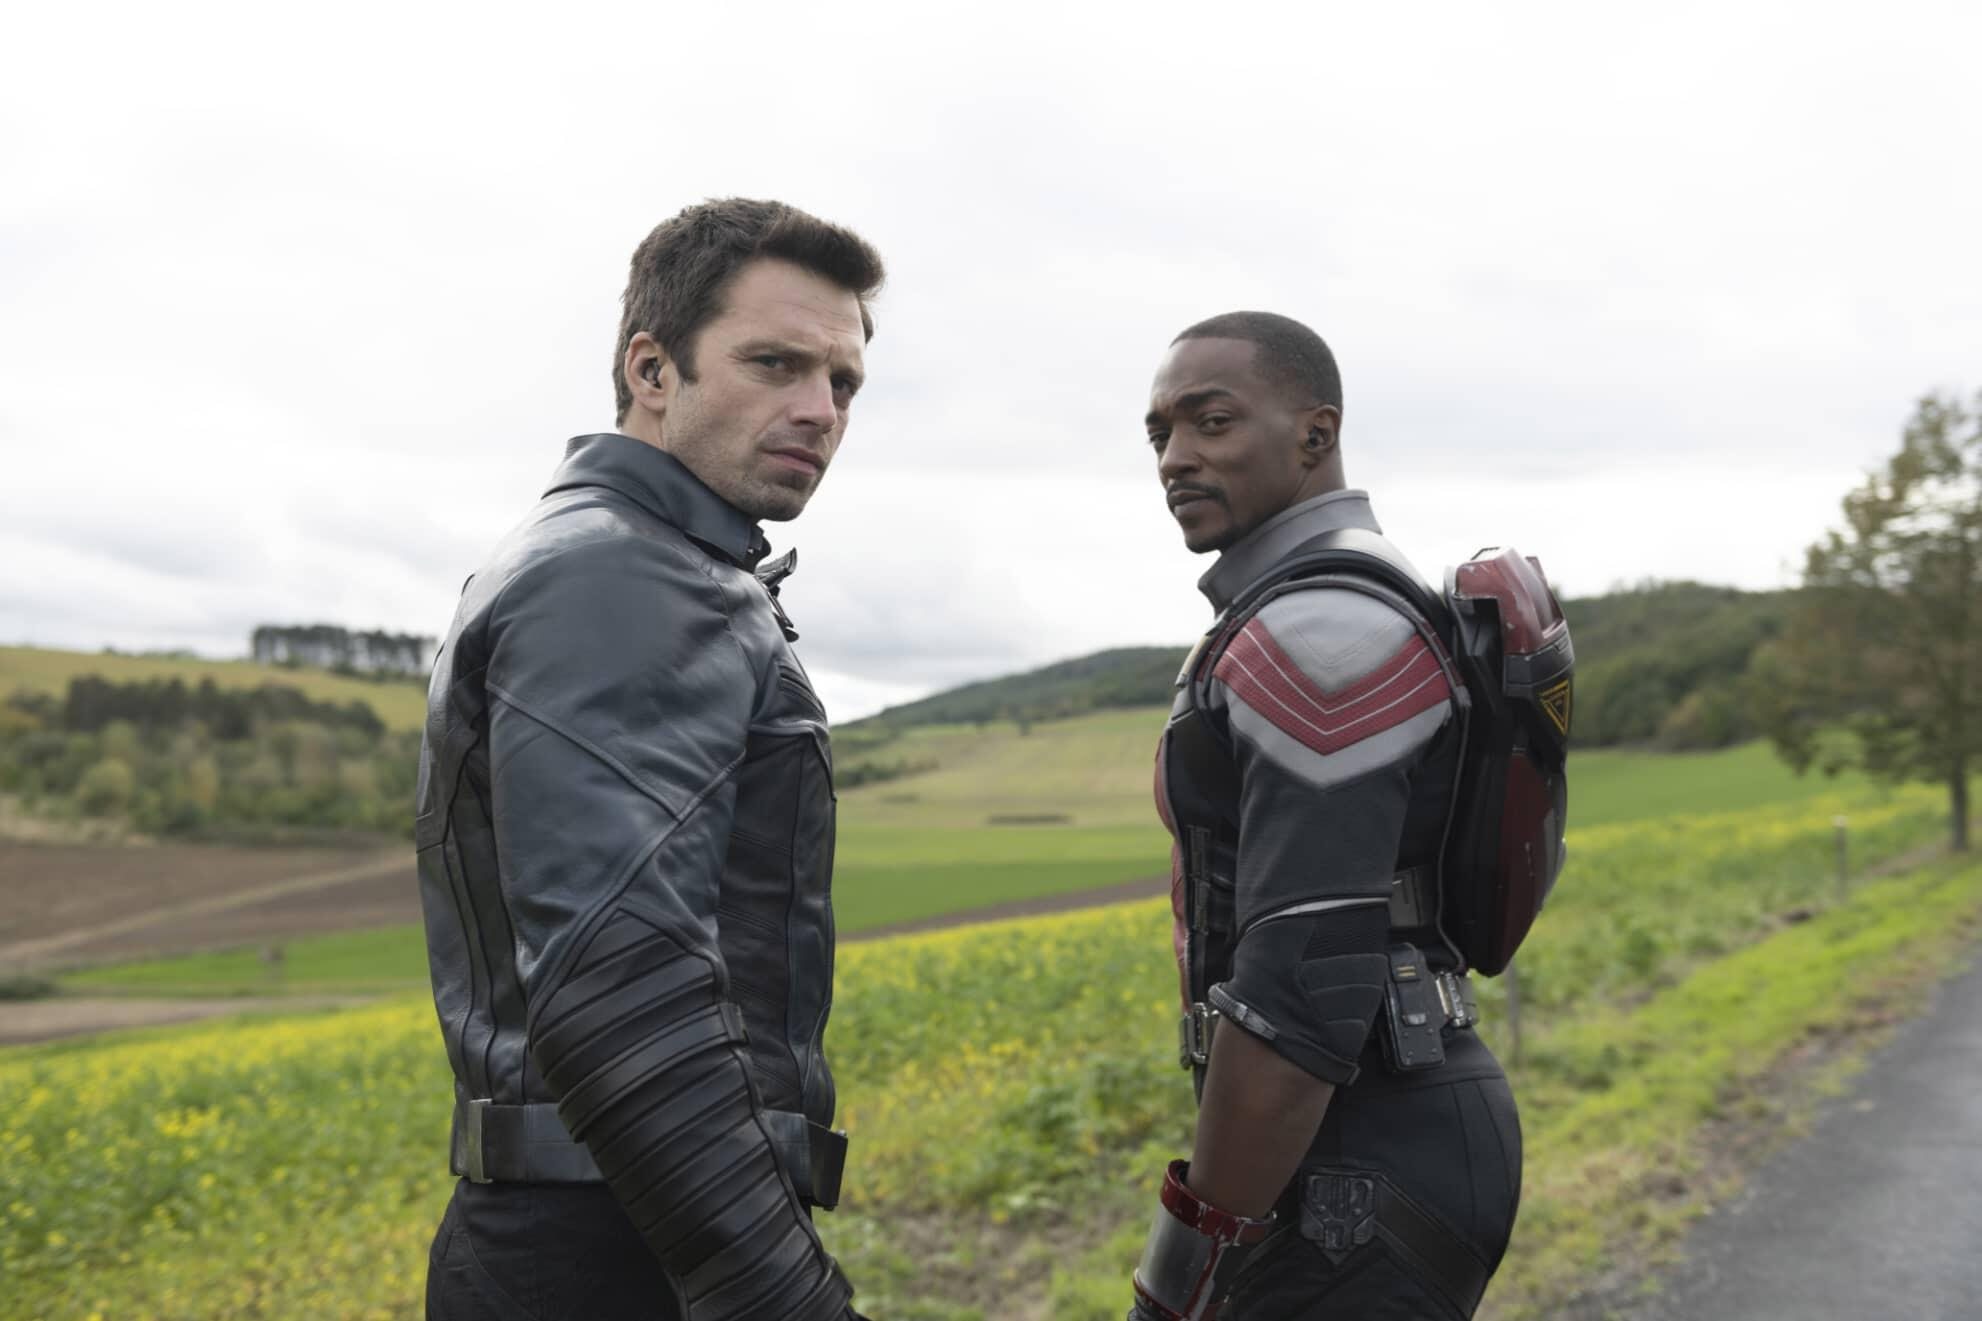 Marvel Studios' The Falcon and The Winter Soldier Episode 2 Guide